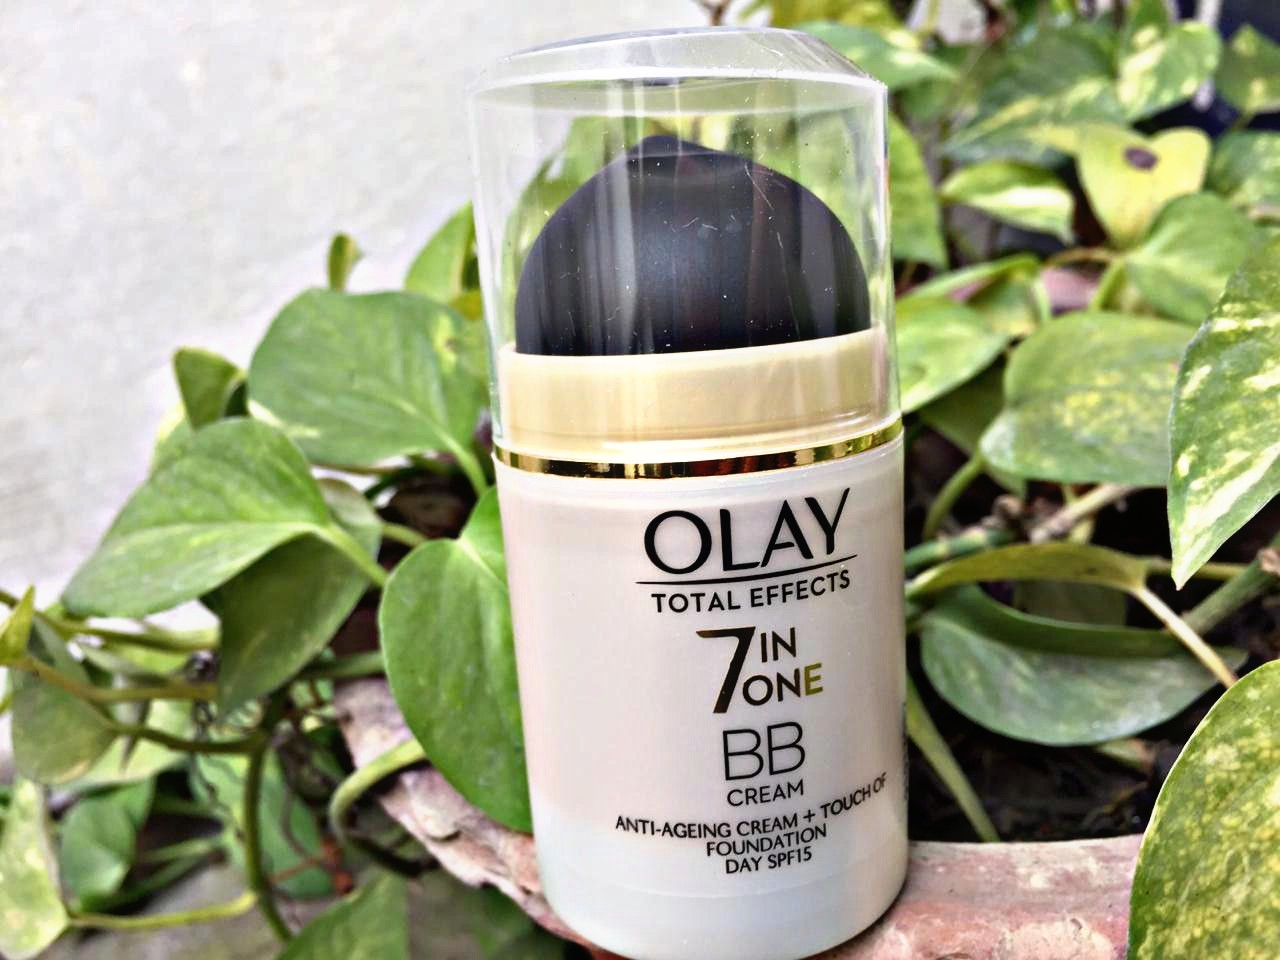 Olay BB Crème 7 In 1 Review